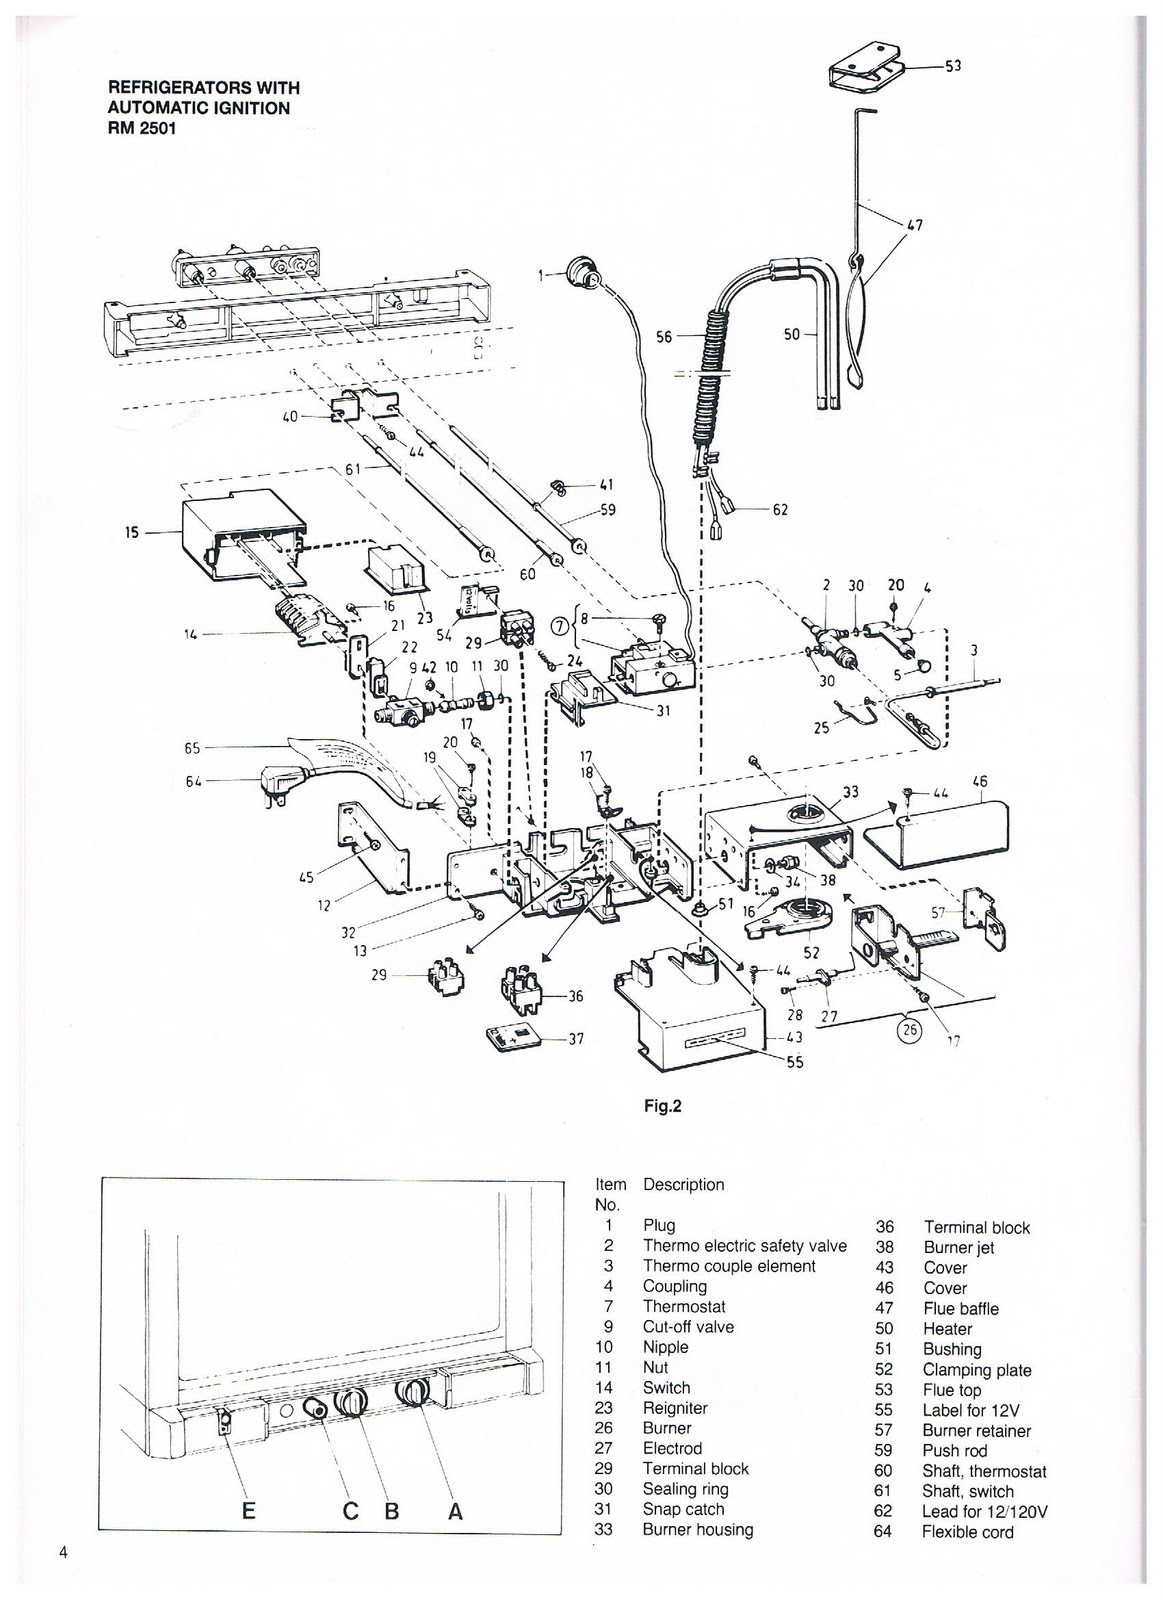 water pump wiring diagram 04 ford f150 1983 fleetwood pace arrow owners manuals: dometic 2 way refrigerator rm2301-2402-2501-260 & 2801